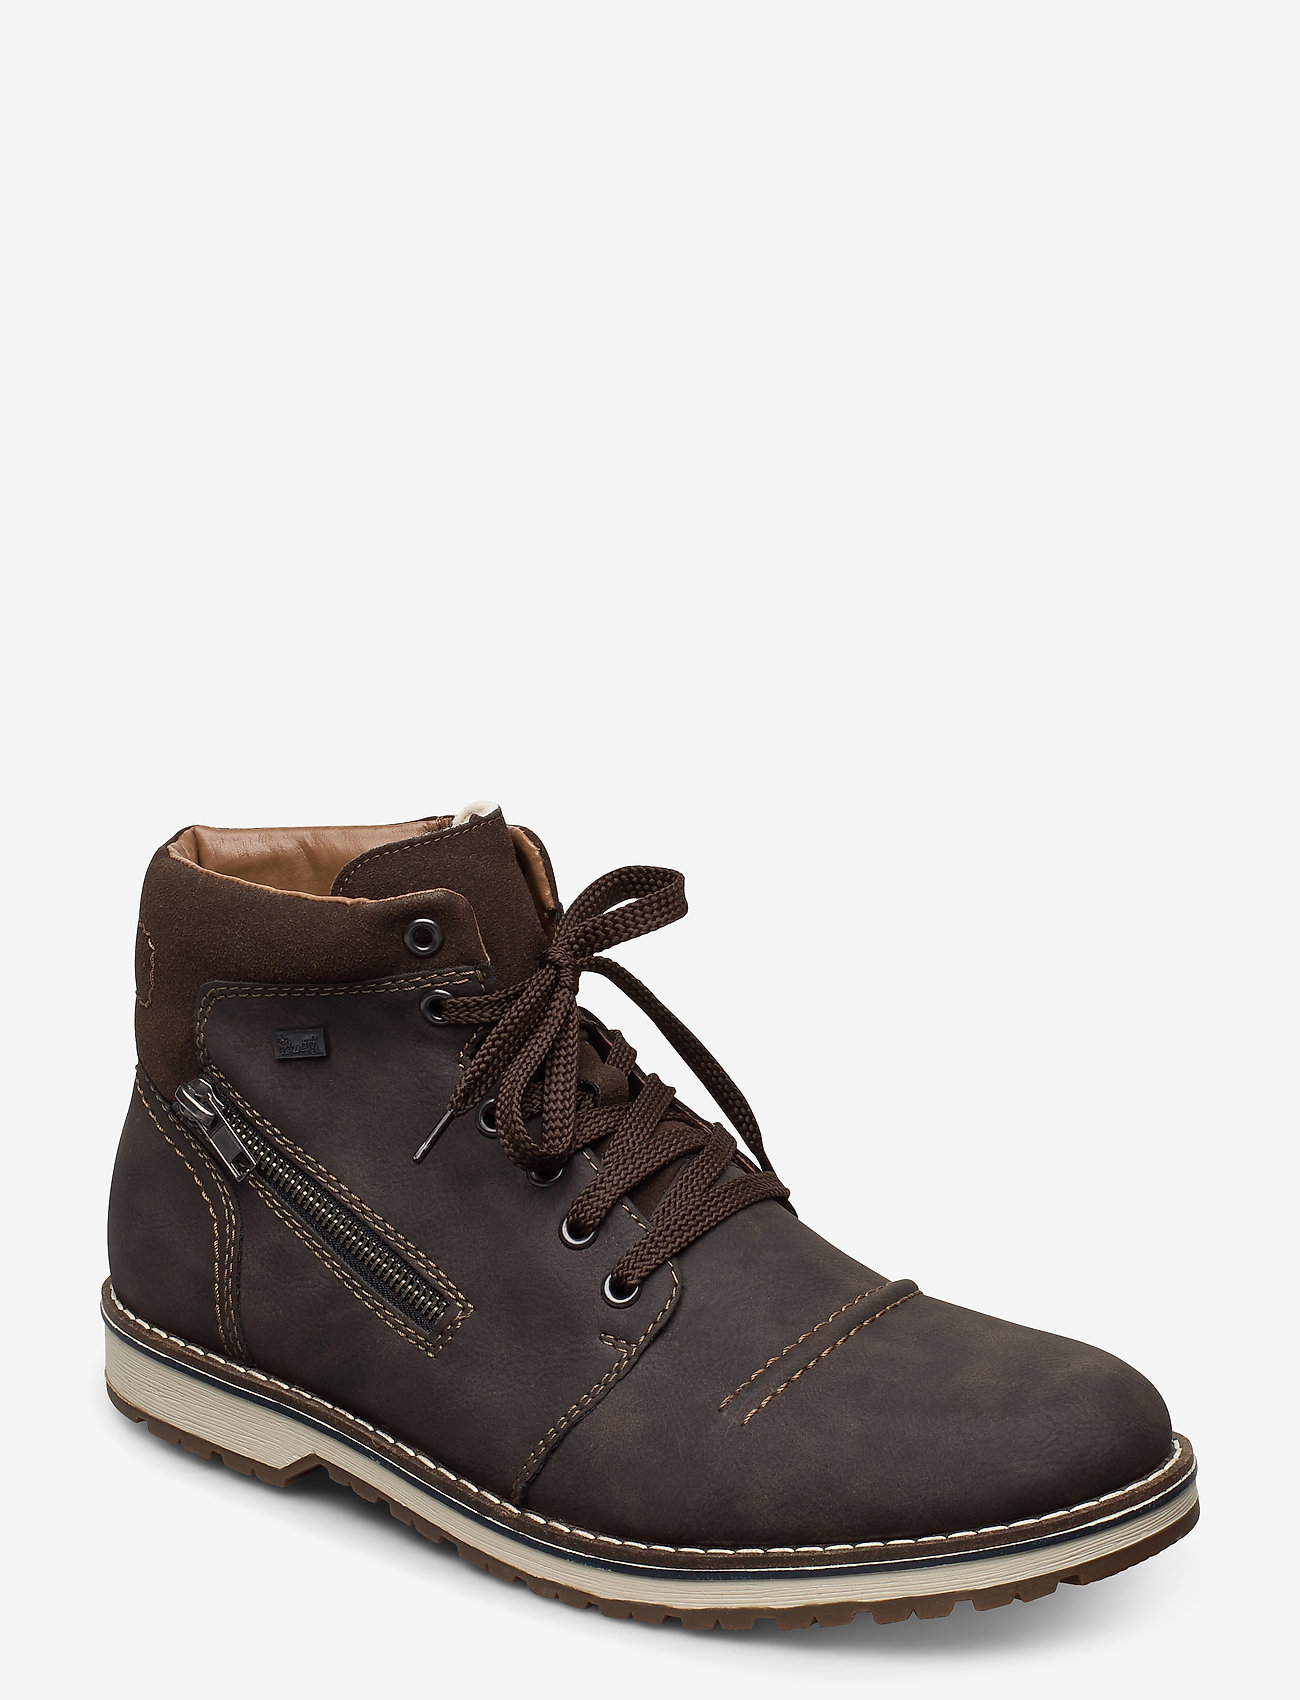 Rieker - 39231-26 - winterlaarzen - brown - 0